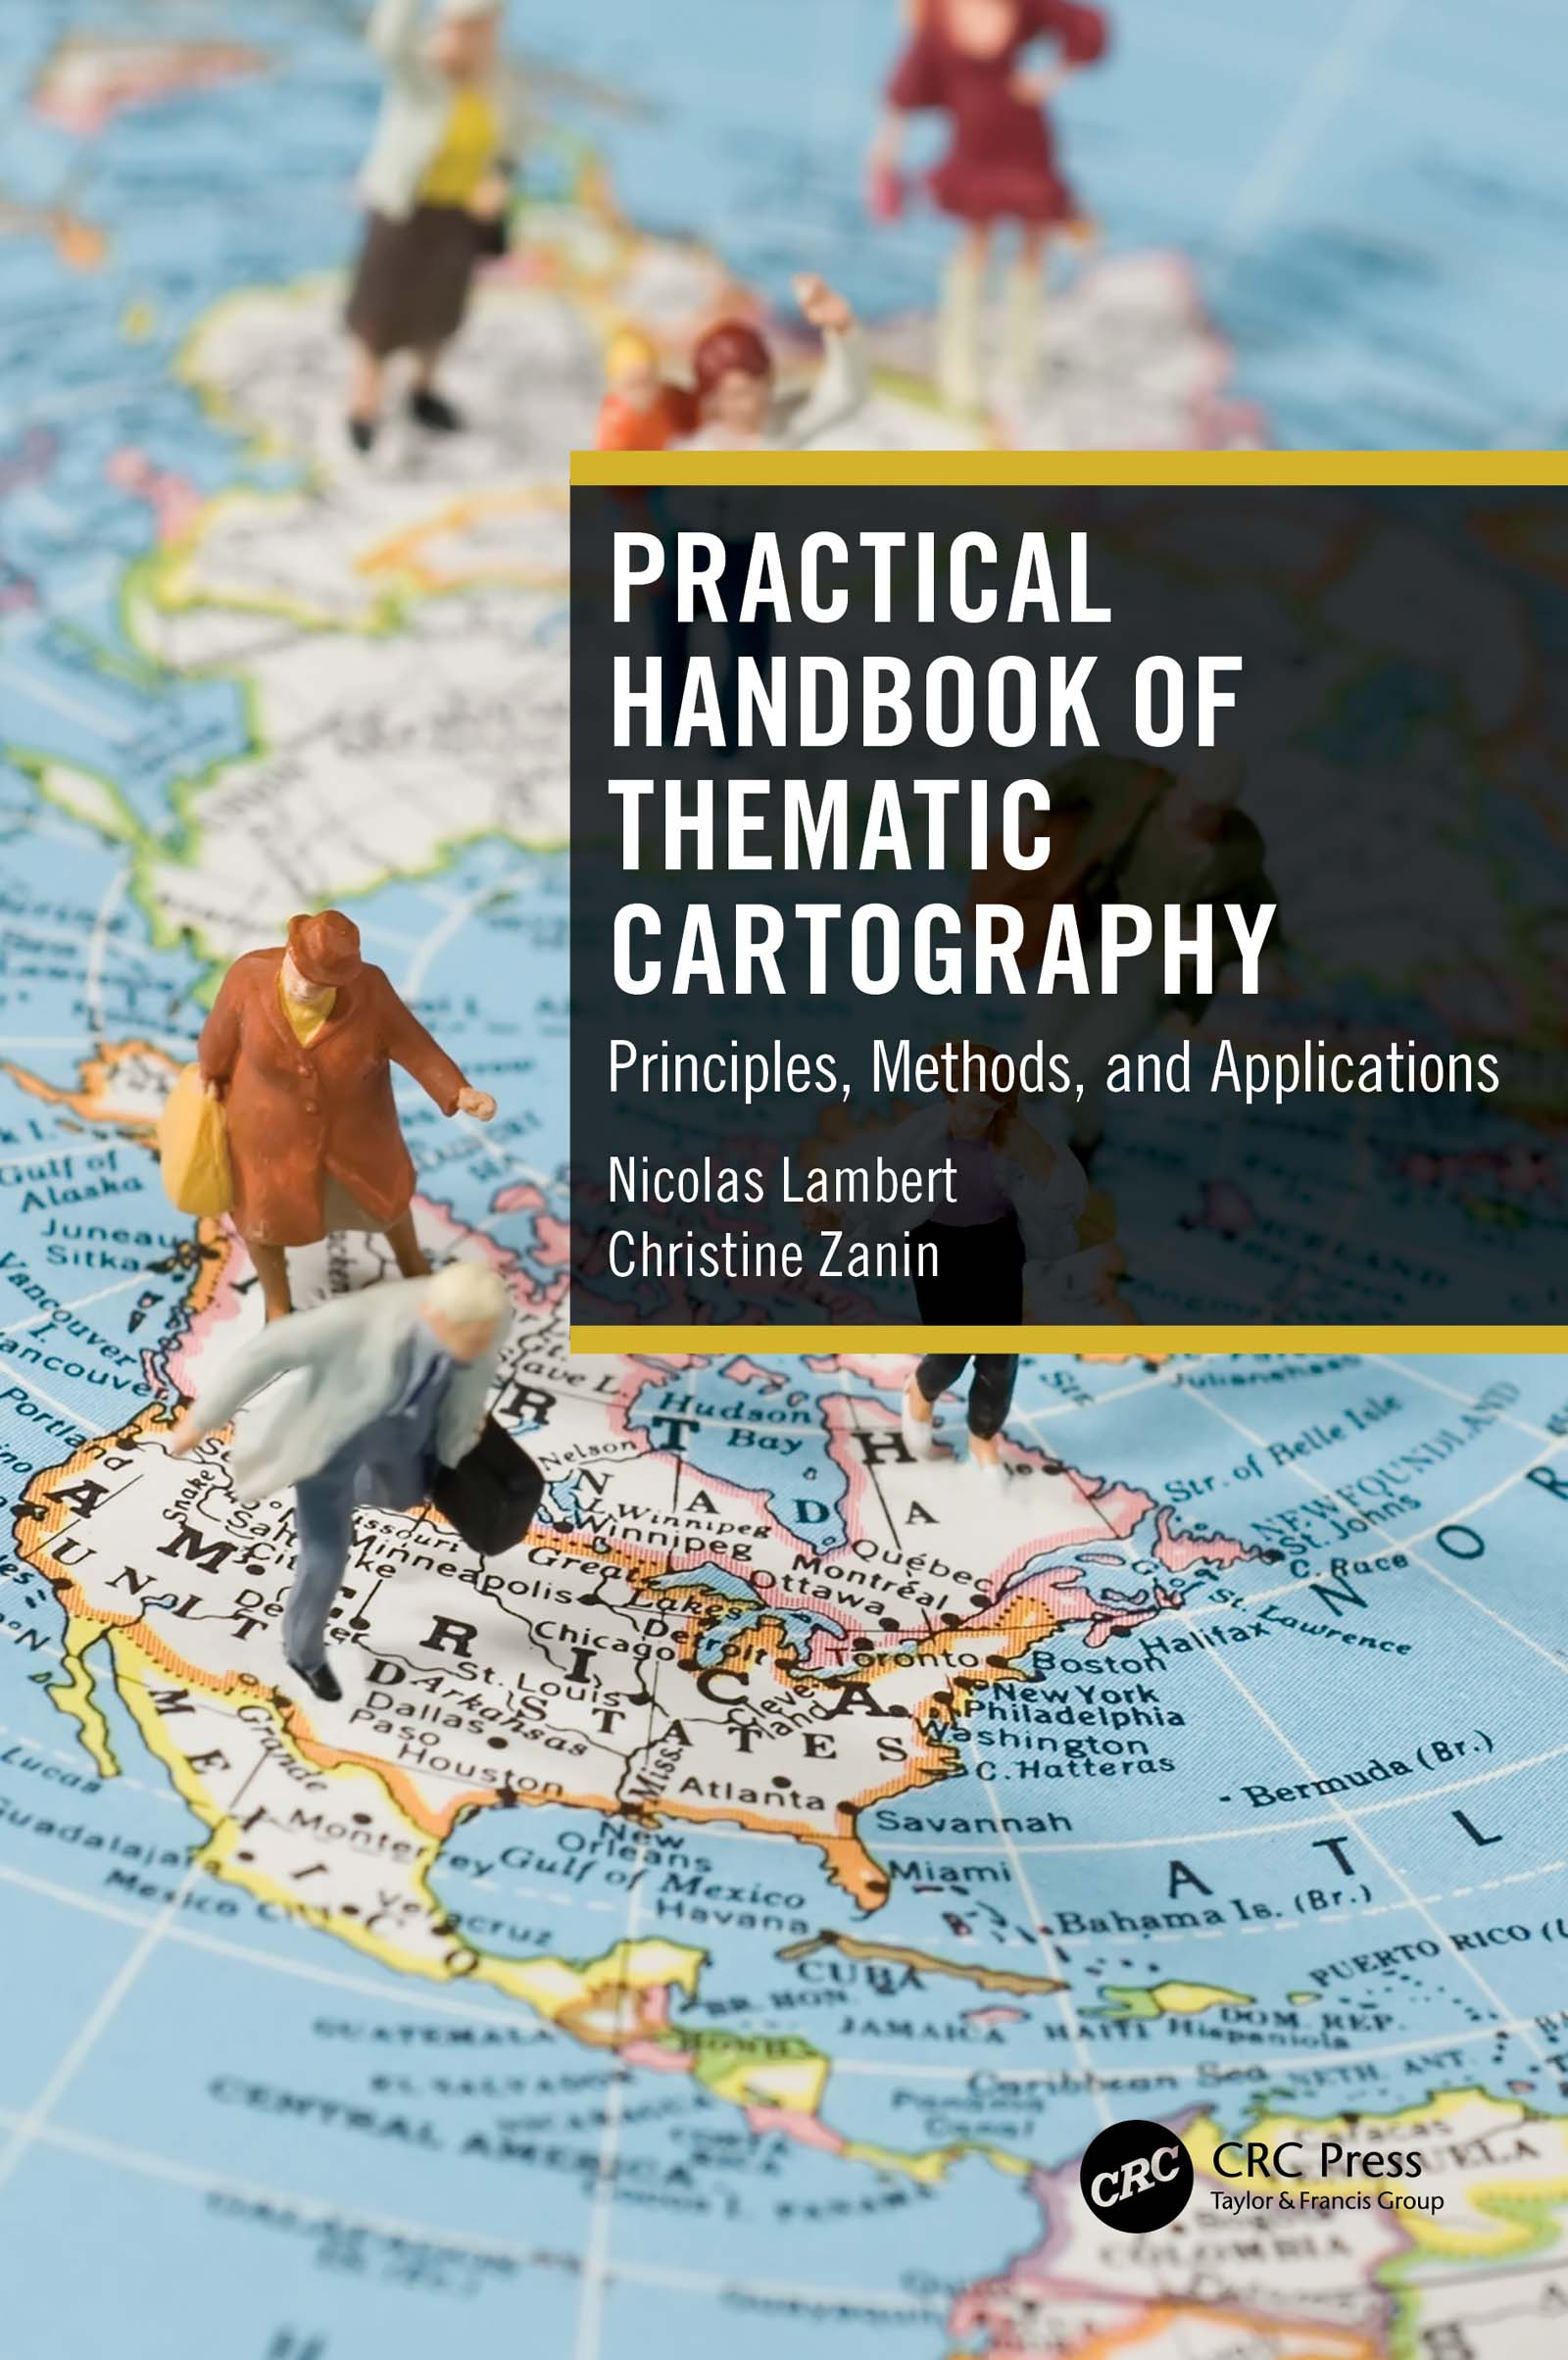 Practical Handbook of Thematic Cartography Principles, Methods, and Applications Hardcover